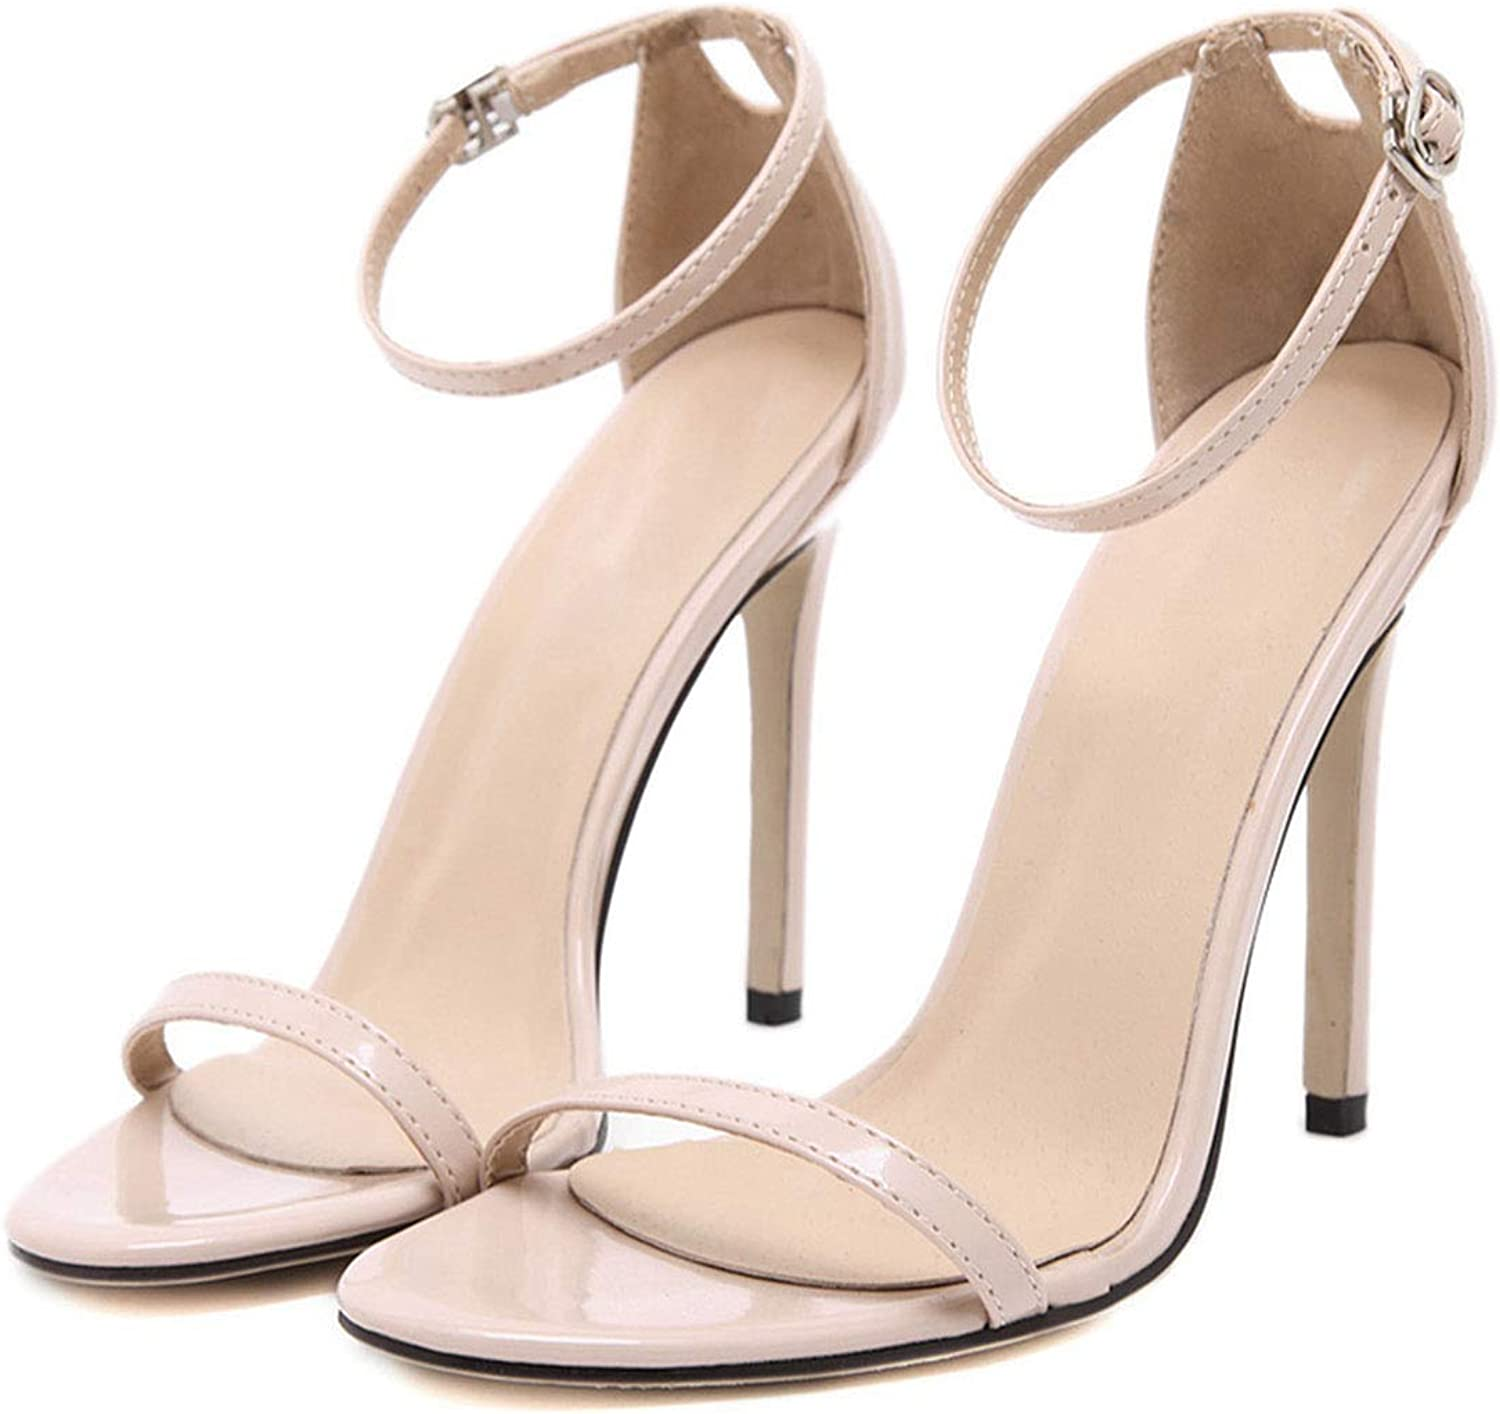 Fashion Classics Brand Za R Peep Toe Buckle Trap Stiletto High Heels Sandals shoes Woman bluee White Red Wedding shoes Factory 43